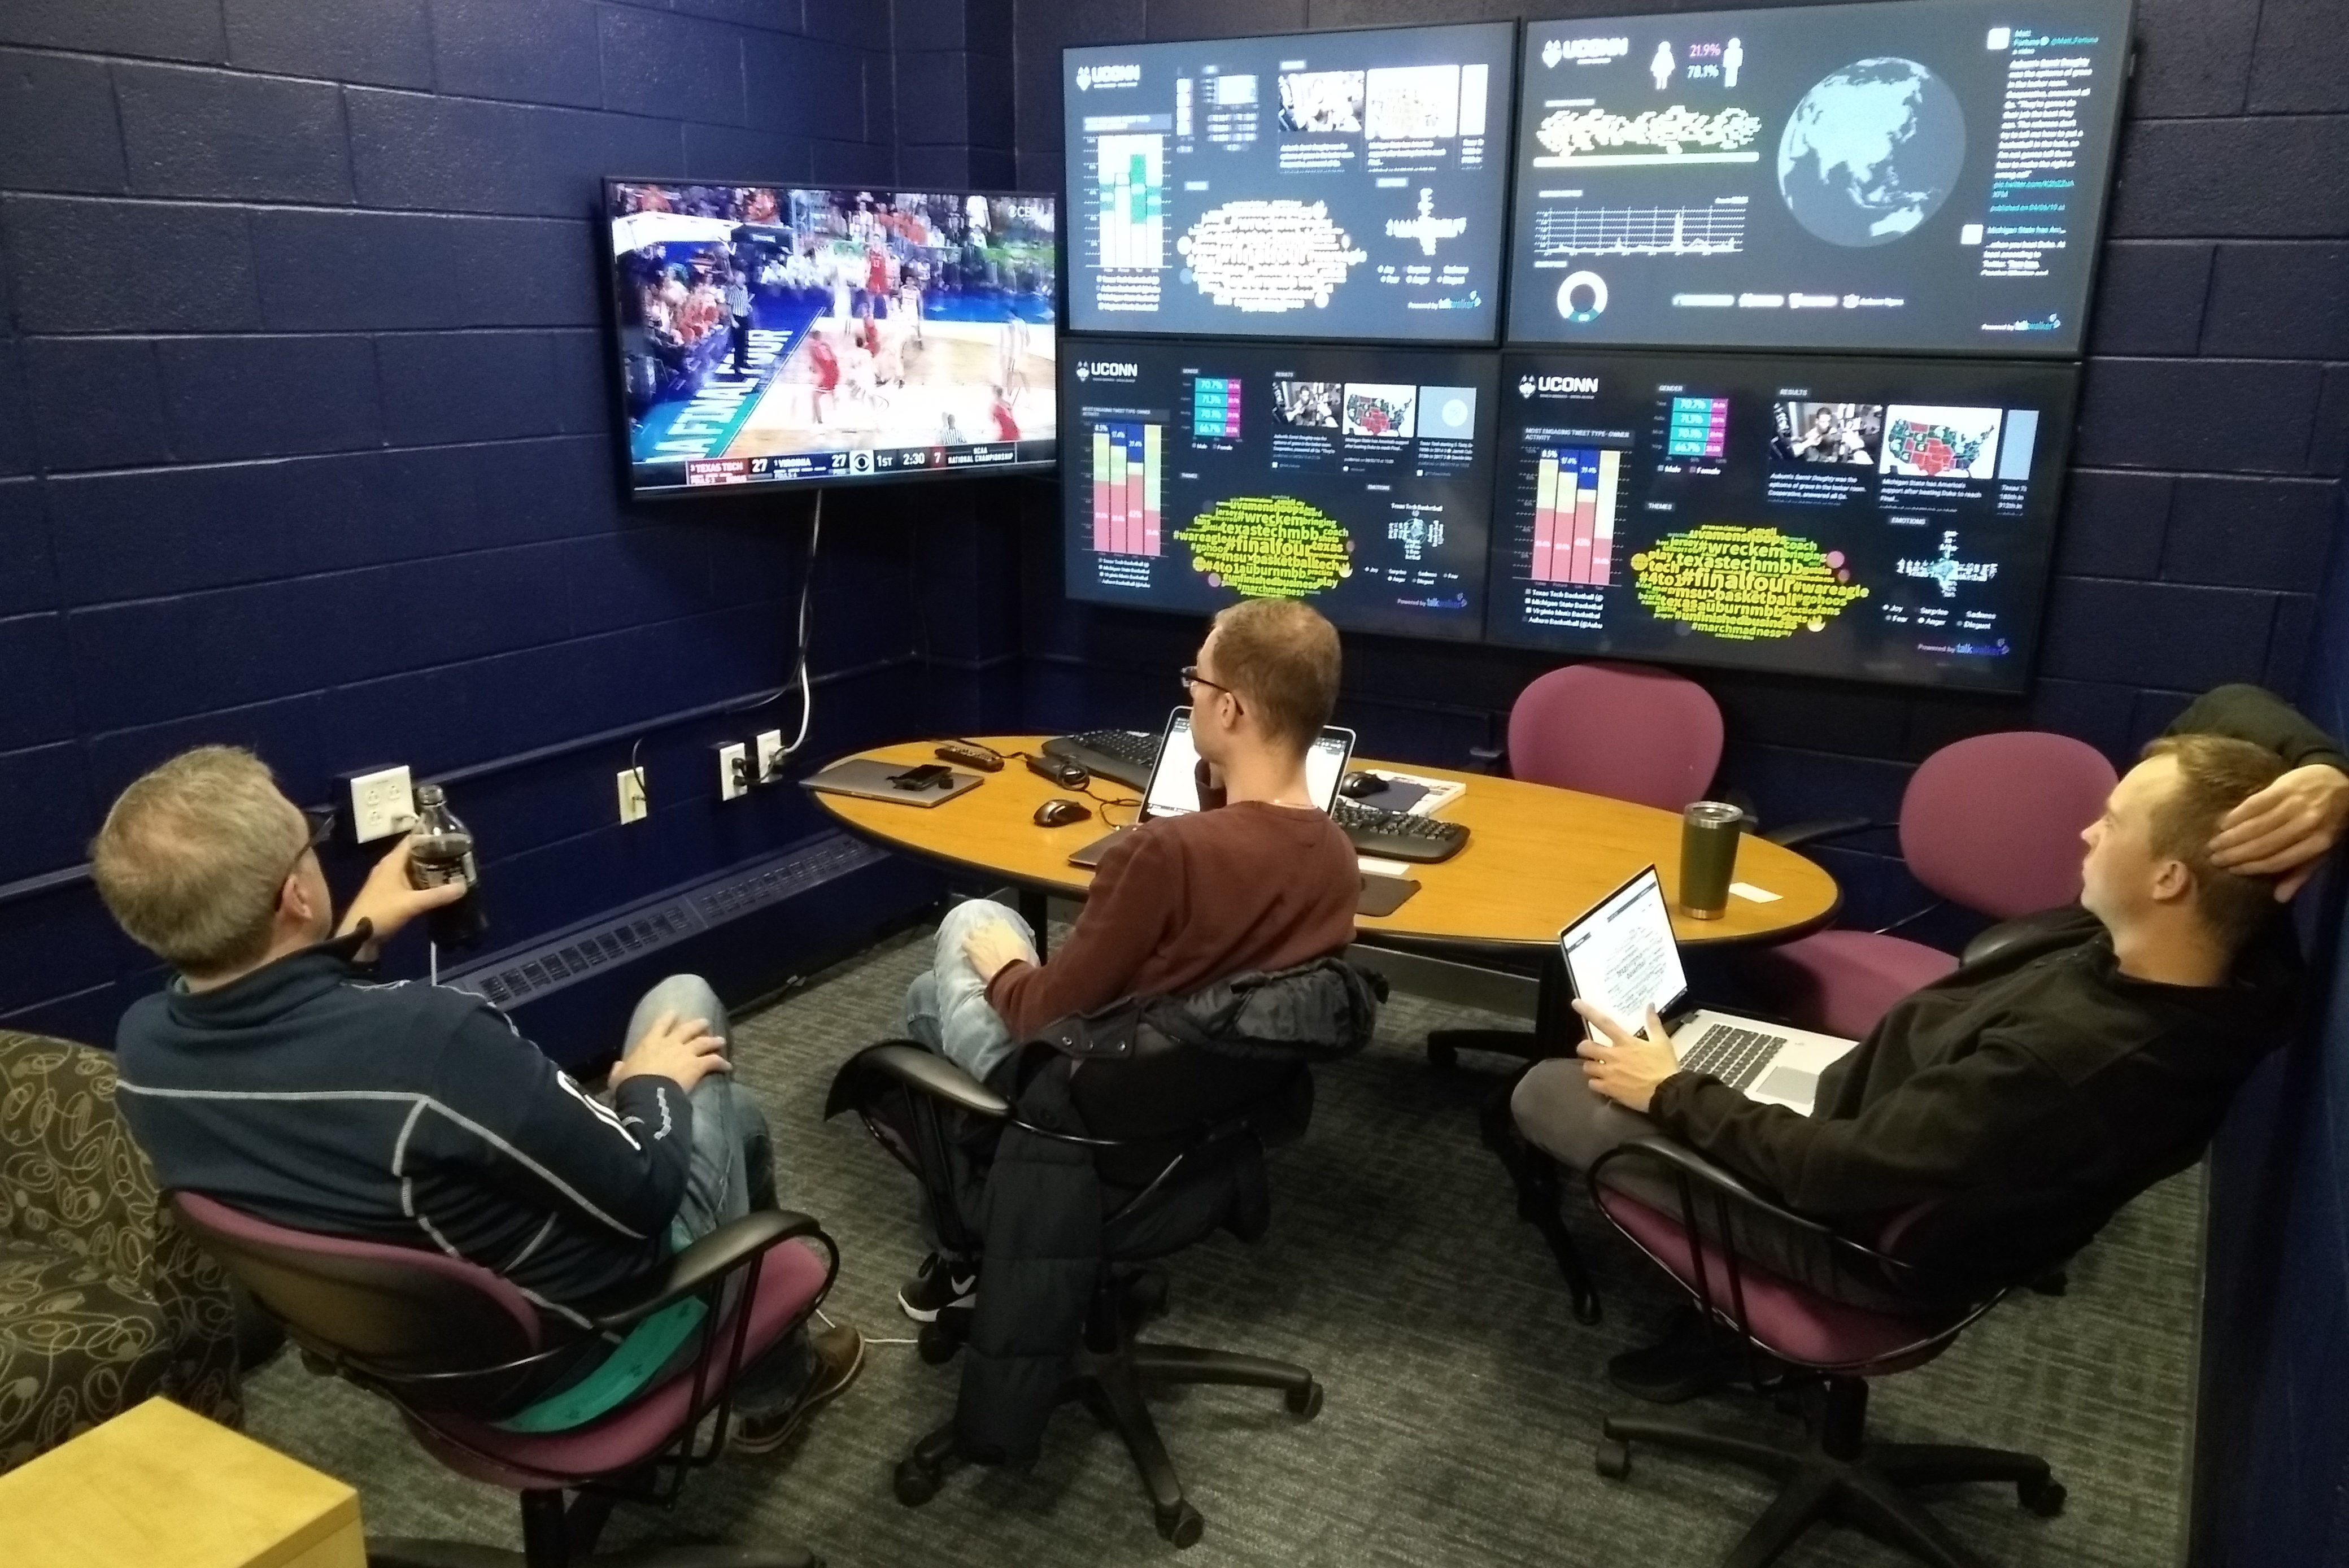 Three men sit in front of a wall full of screens showing a variety of graphics and images relating to social media use during a basketball game.